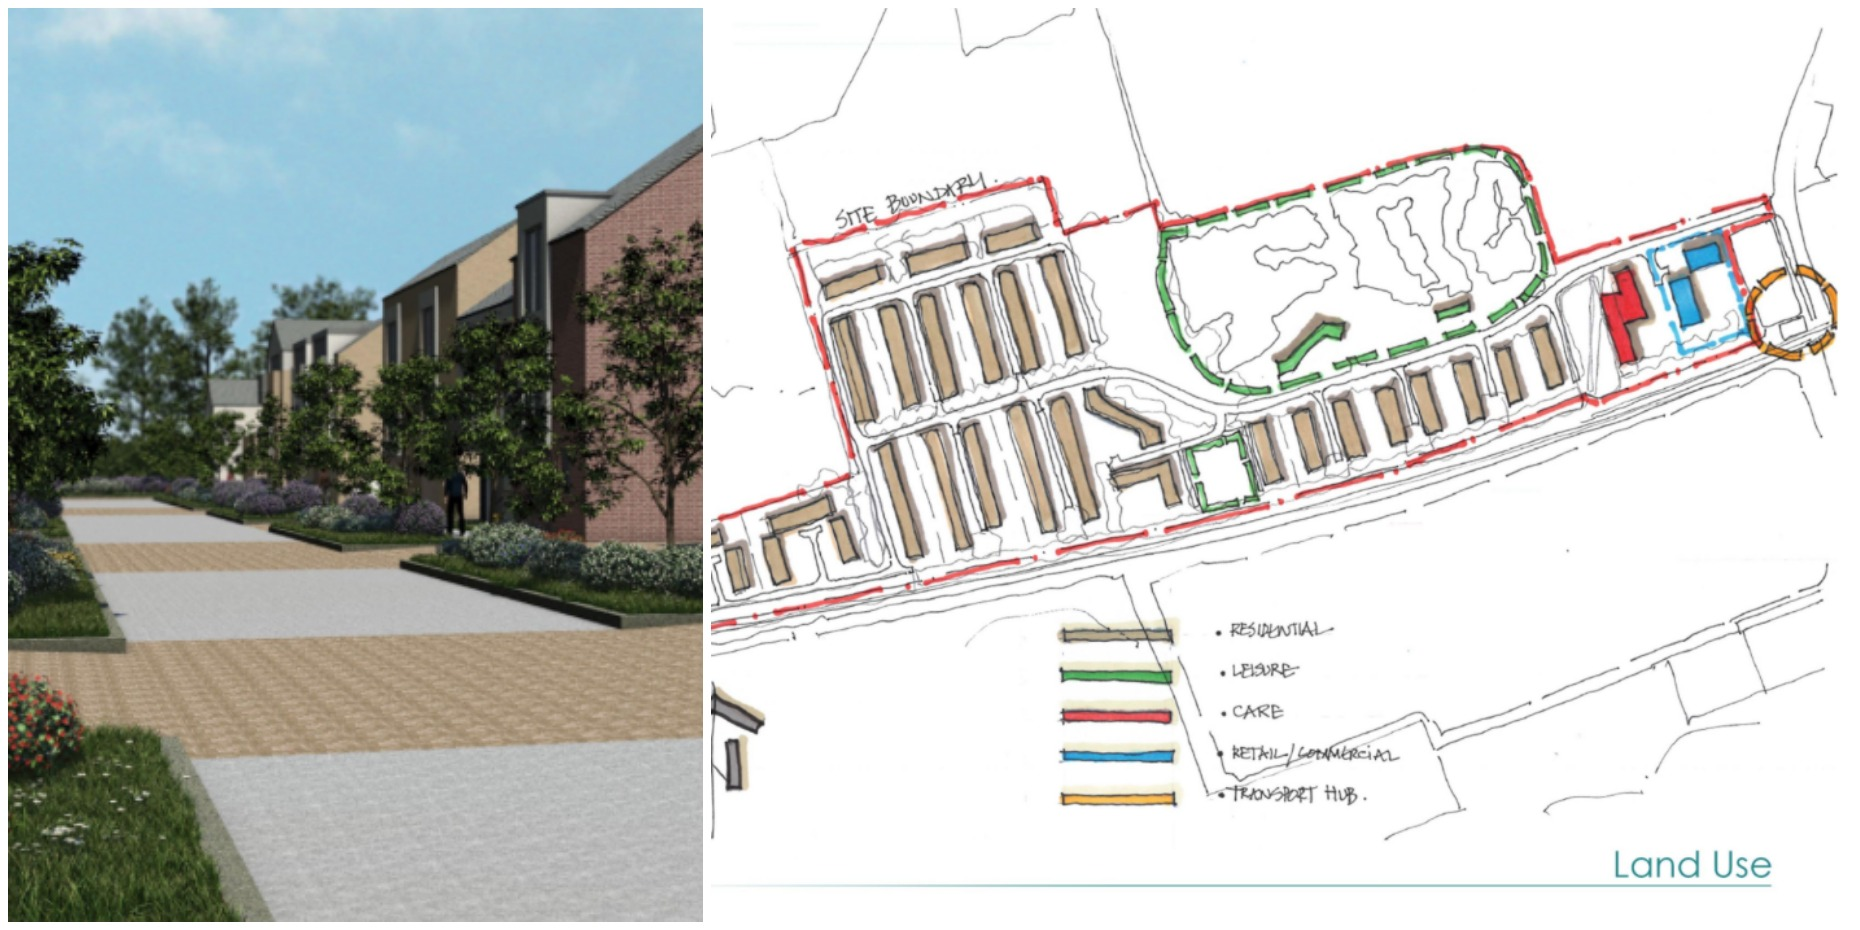 The Leafbridge development designs for almost 300 homes and amenities. Designs: Core Architects